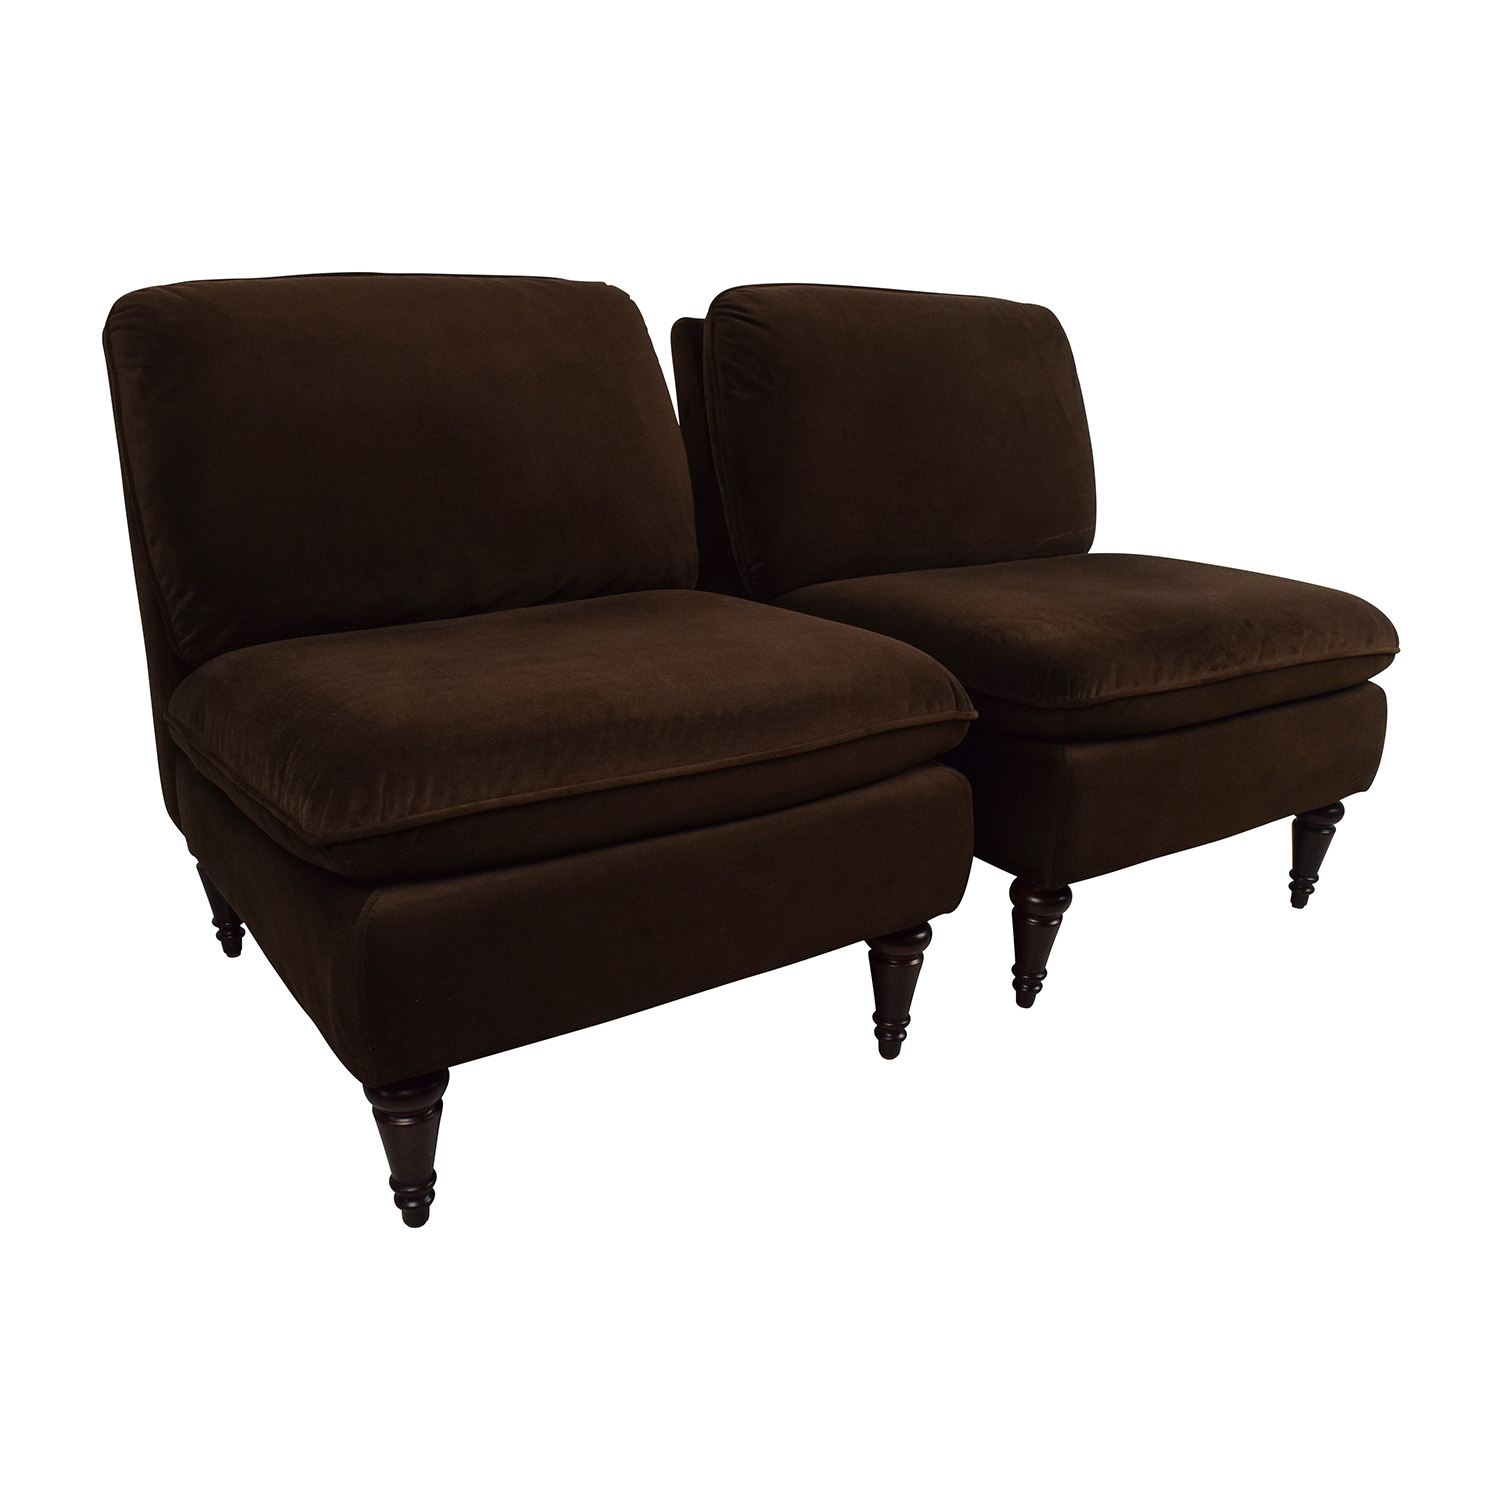 74% OFF World Market World Market Pair of Brown Velvet Chairs